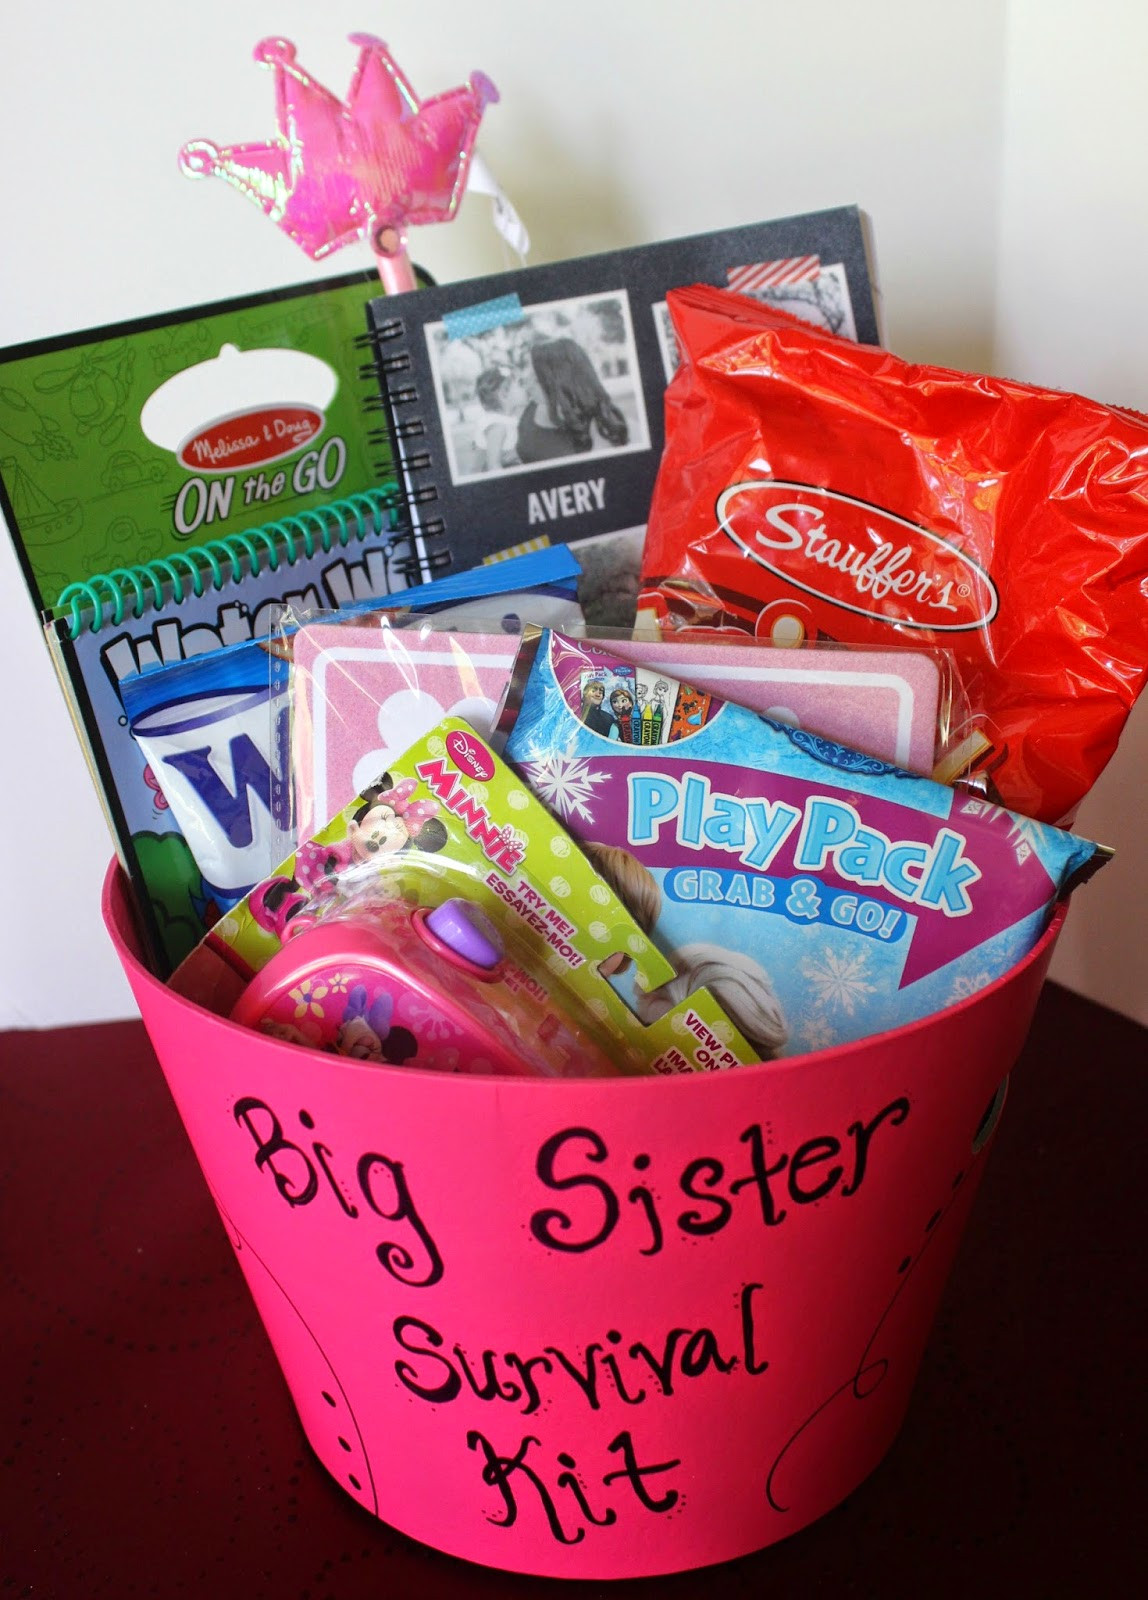 Big Sister Gift Ideas From New Baby  simply made with love Big Sister Survival Kit